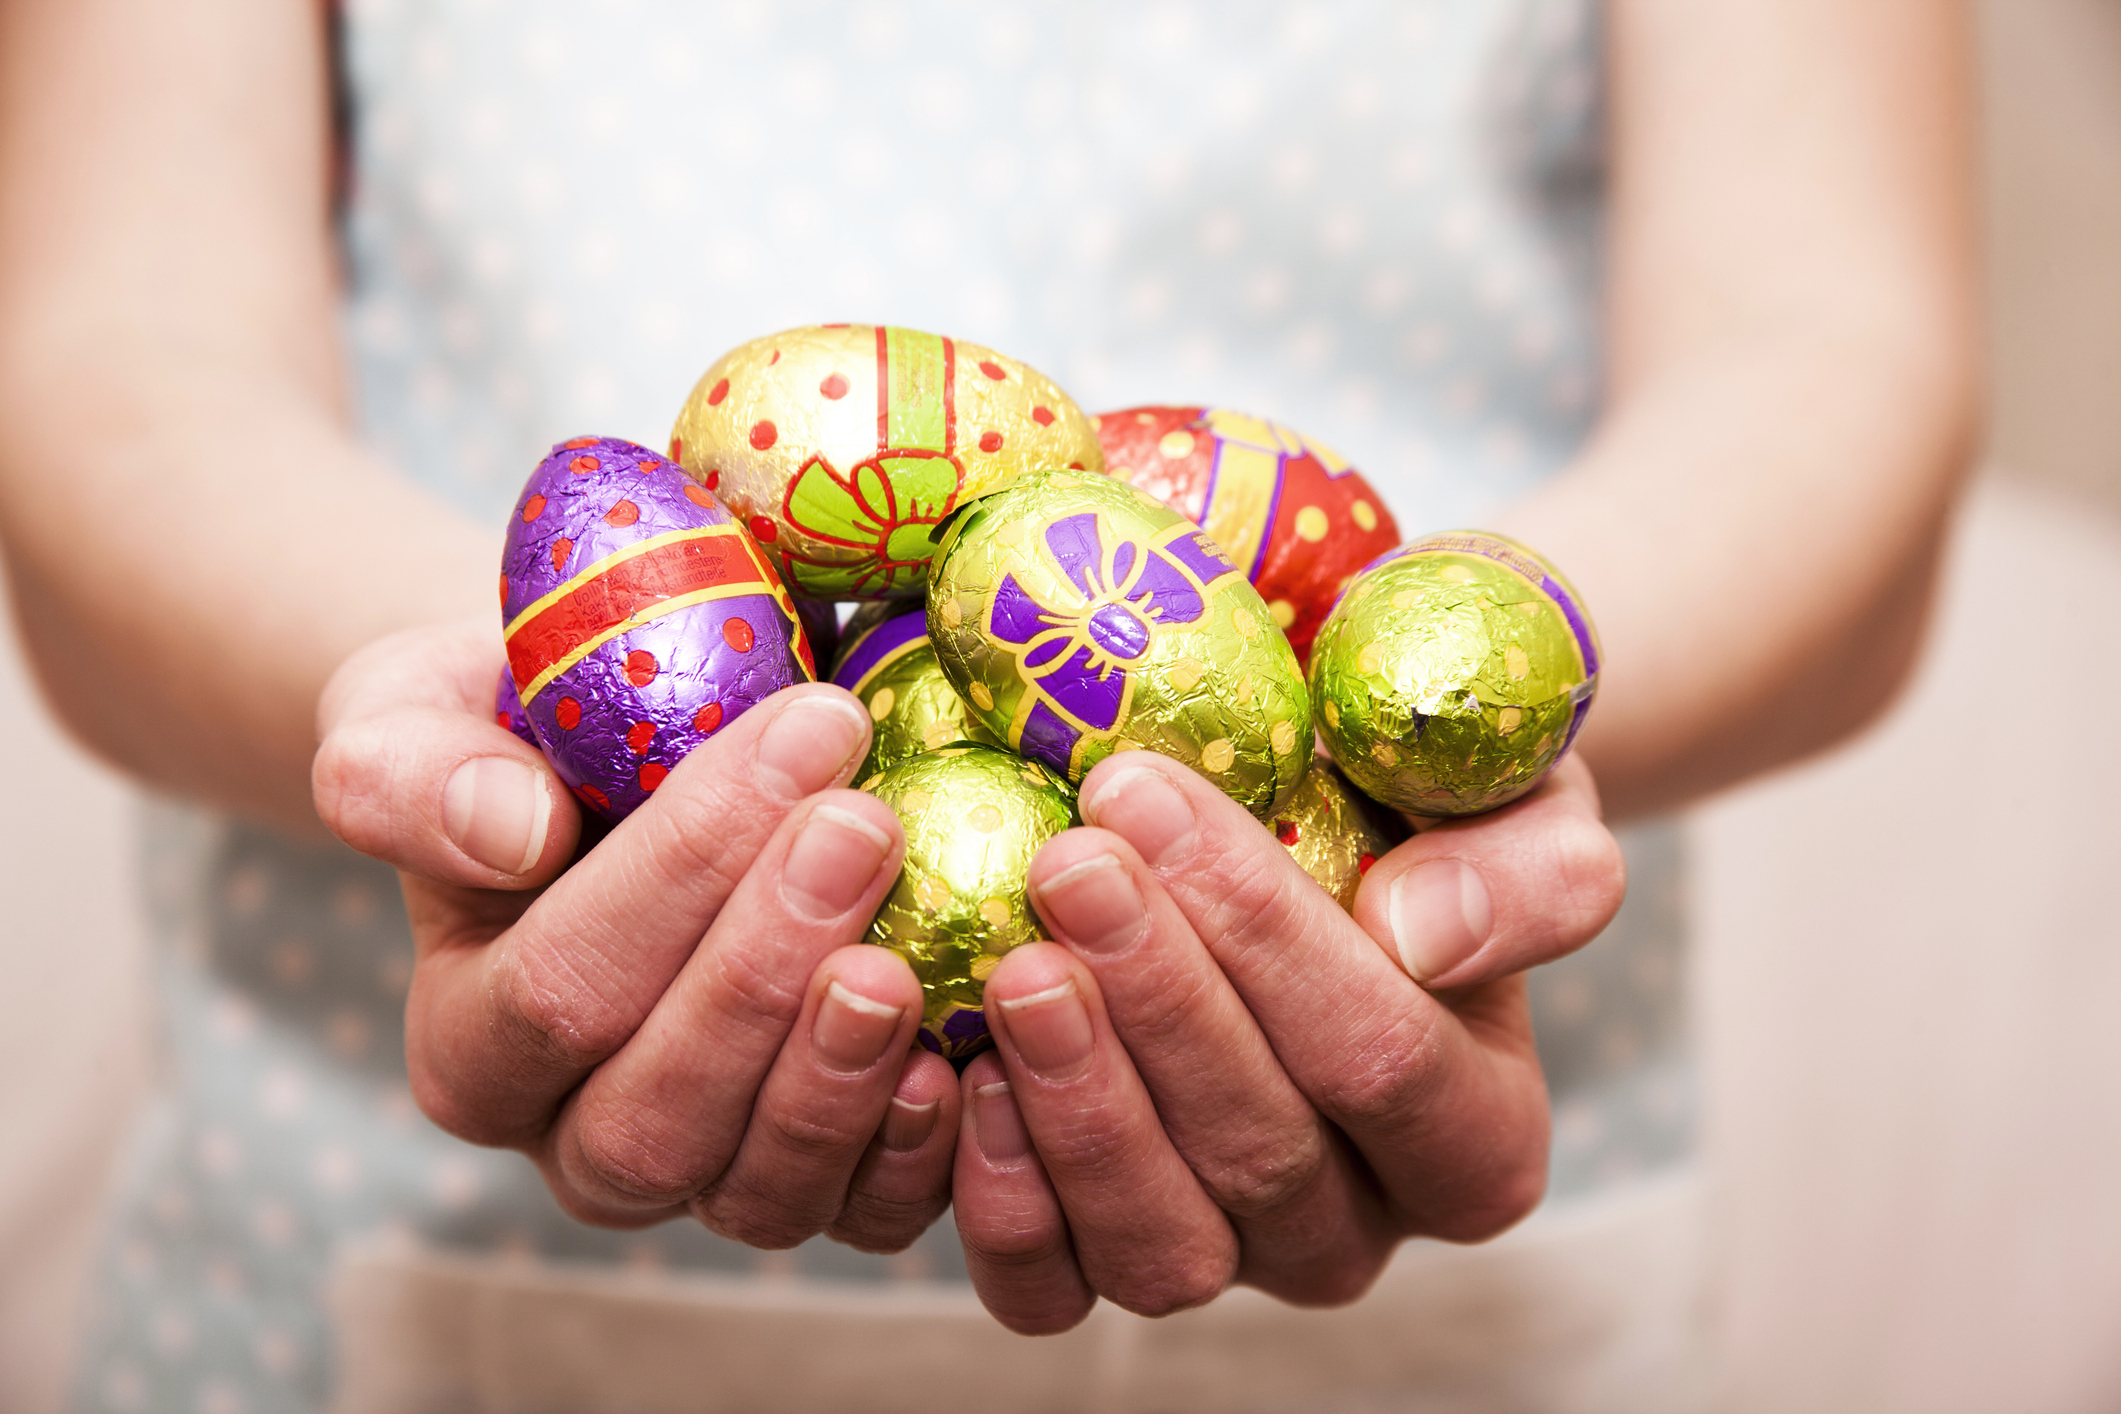 A helicopter will drop more than 30,000 chocolate Easter eggs over Upper Coomer on Good Friday. Image: Sally Anscombe